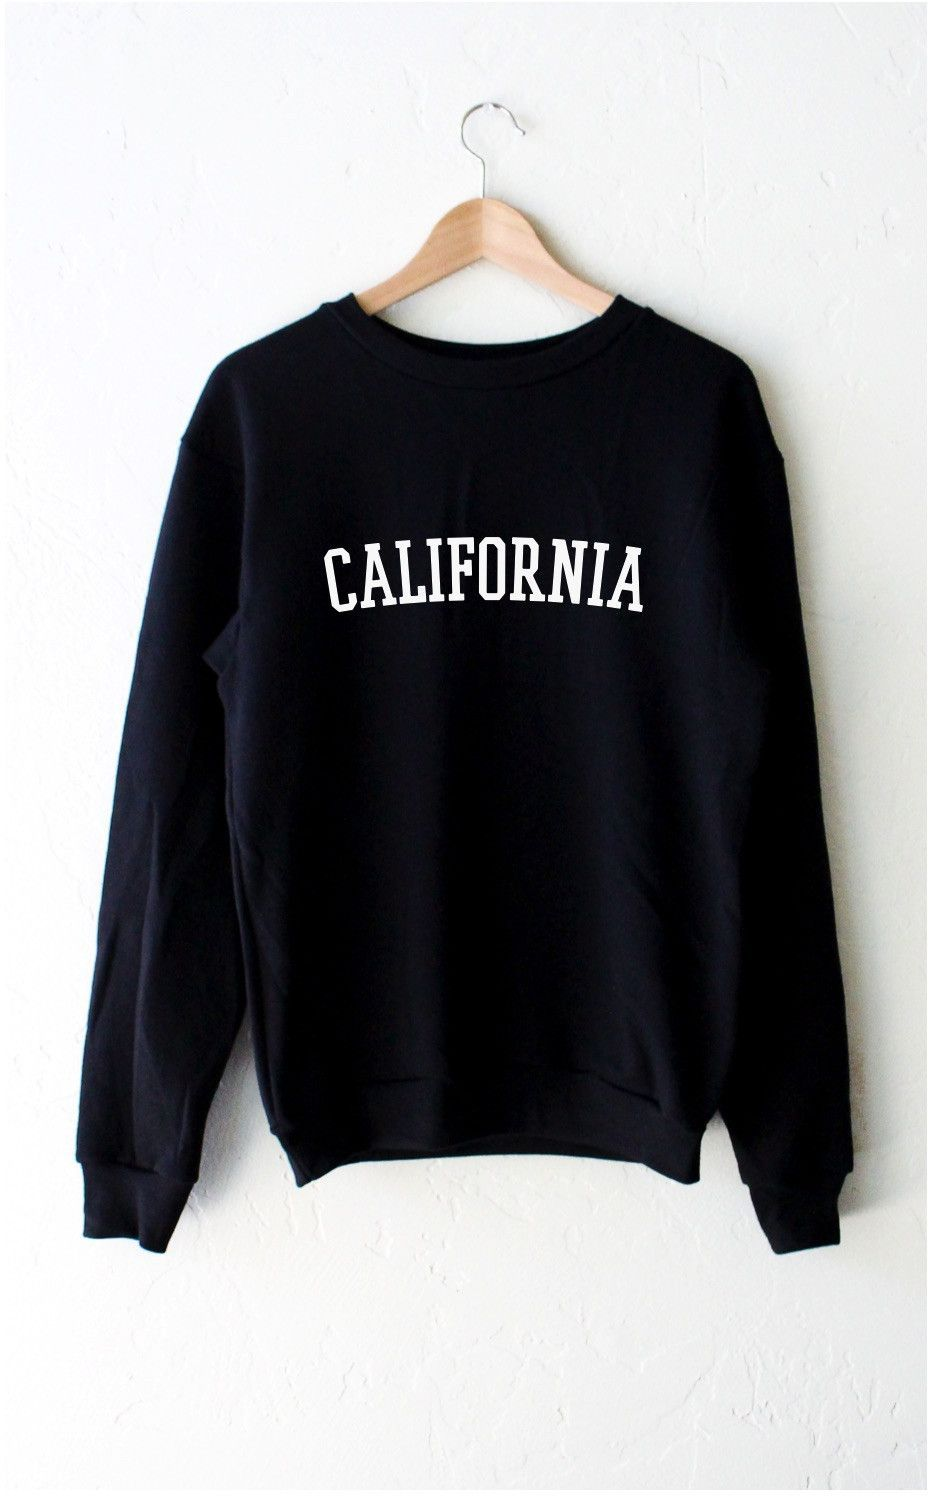 639f33543 Description - Size Guide Details: Oversized, unisex fit crew neck fleece  sweatshirt in black with print featuring 'California' by NYCT clothing.